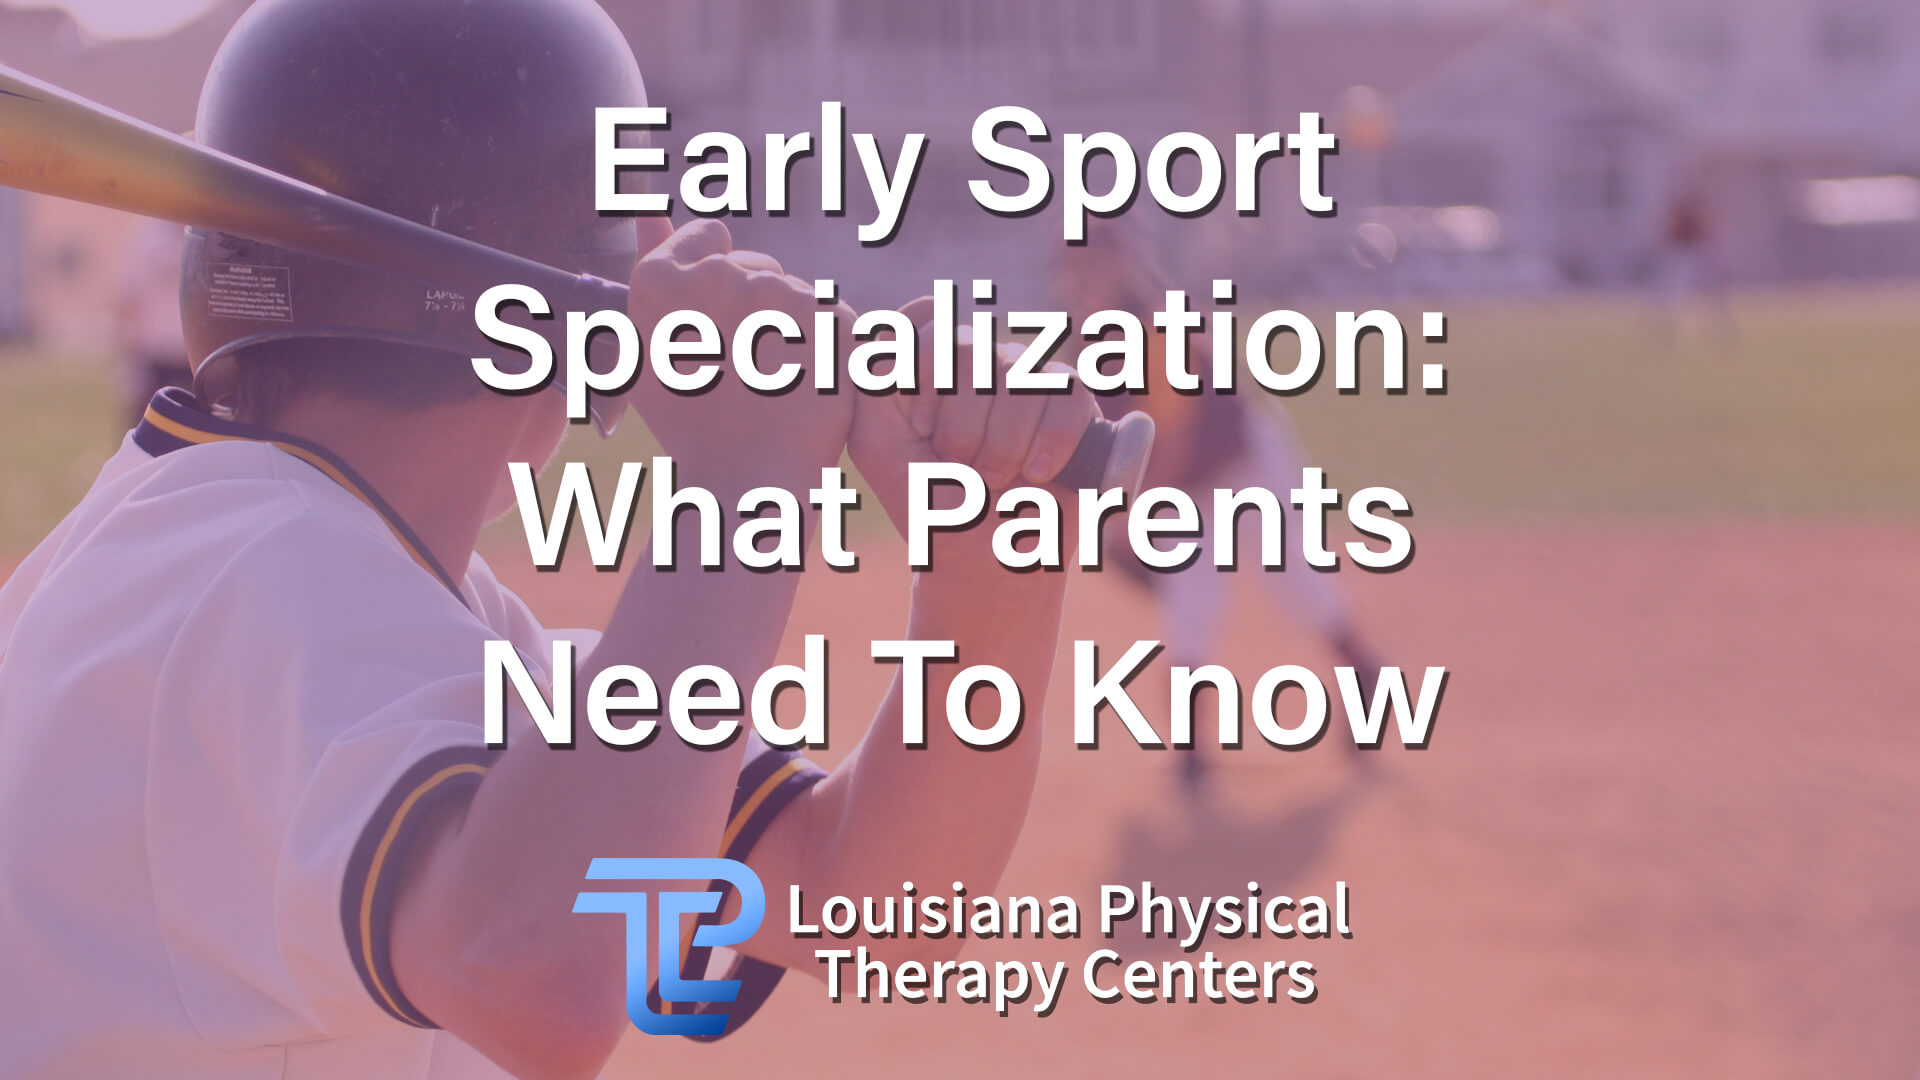 Early Sport Specialization: What Parents Need To Know